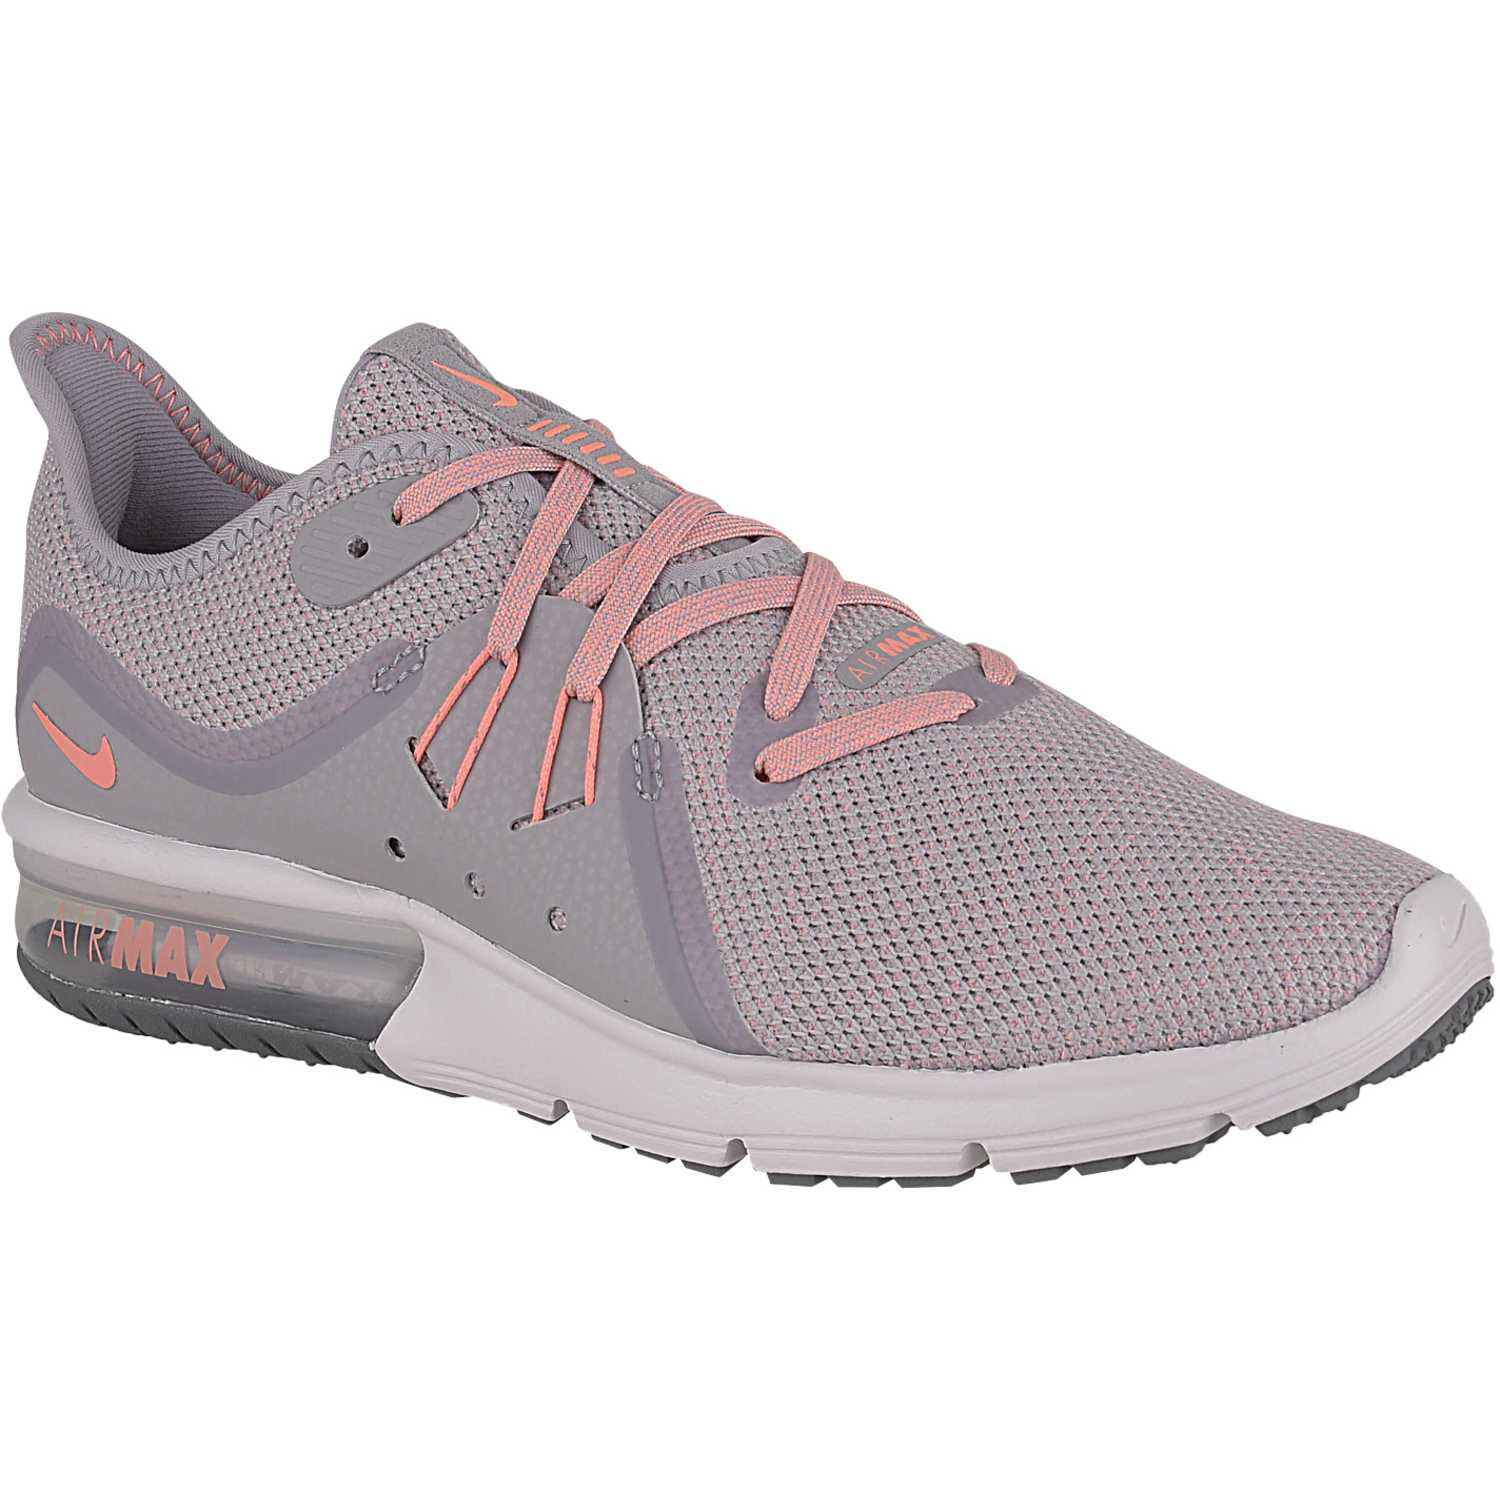 brand new 5eb28 0c2b6 Zapatilla de Mujer Nike Gris   rosado wmns nike air max sequent 3